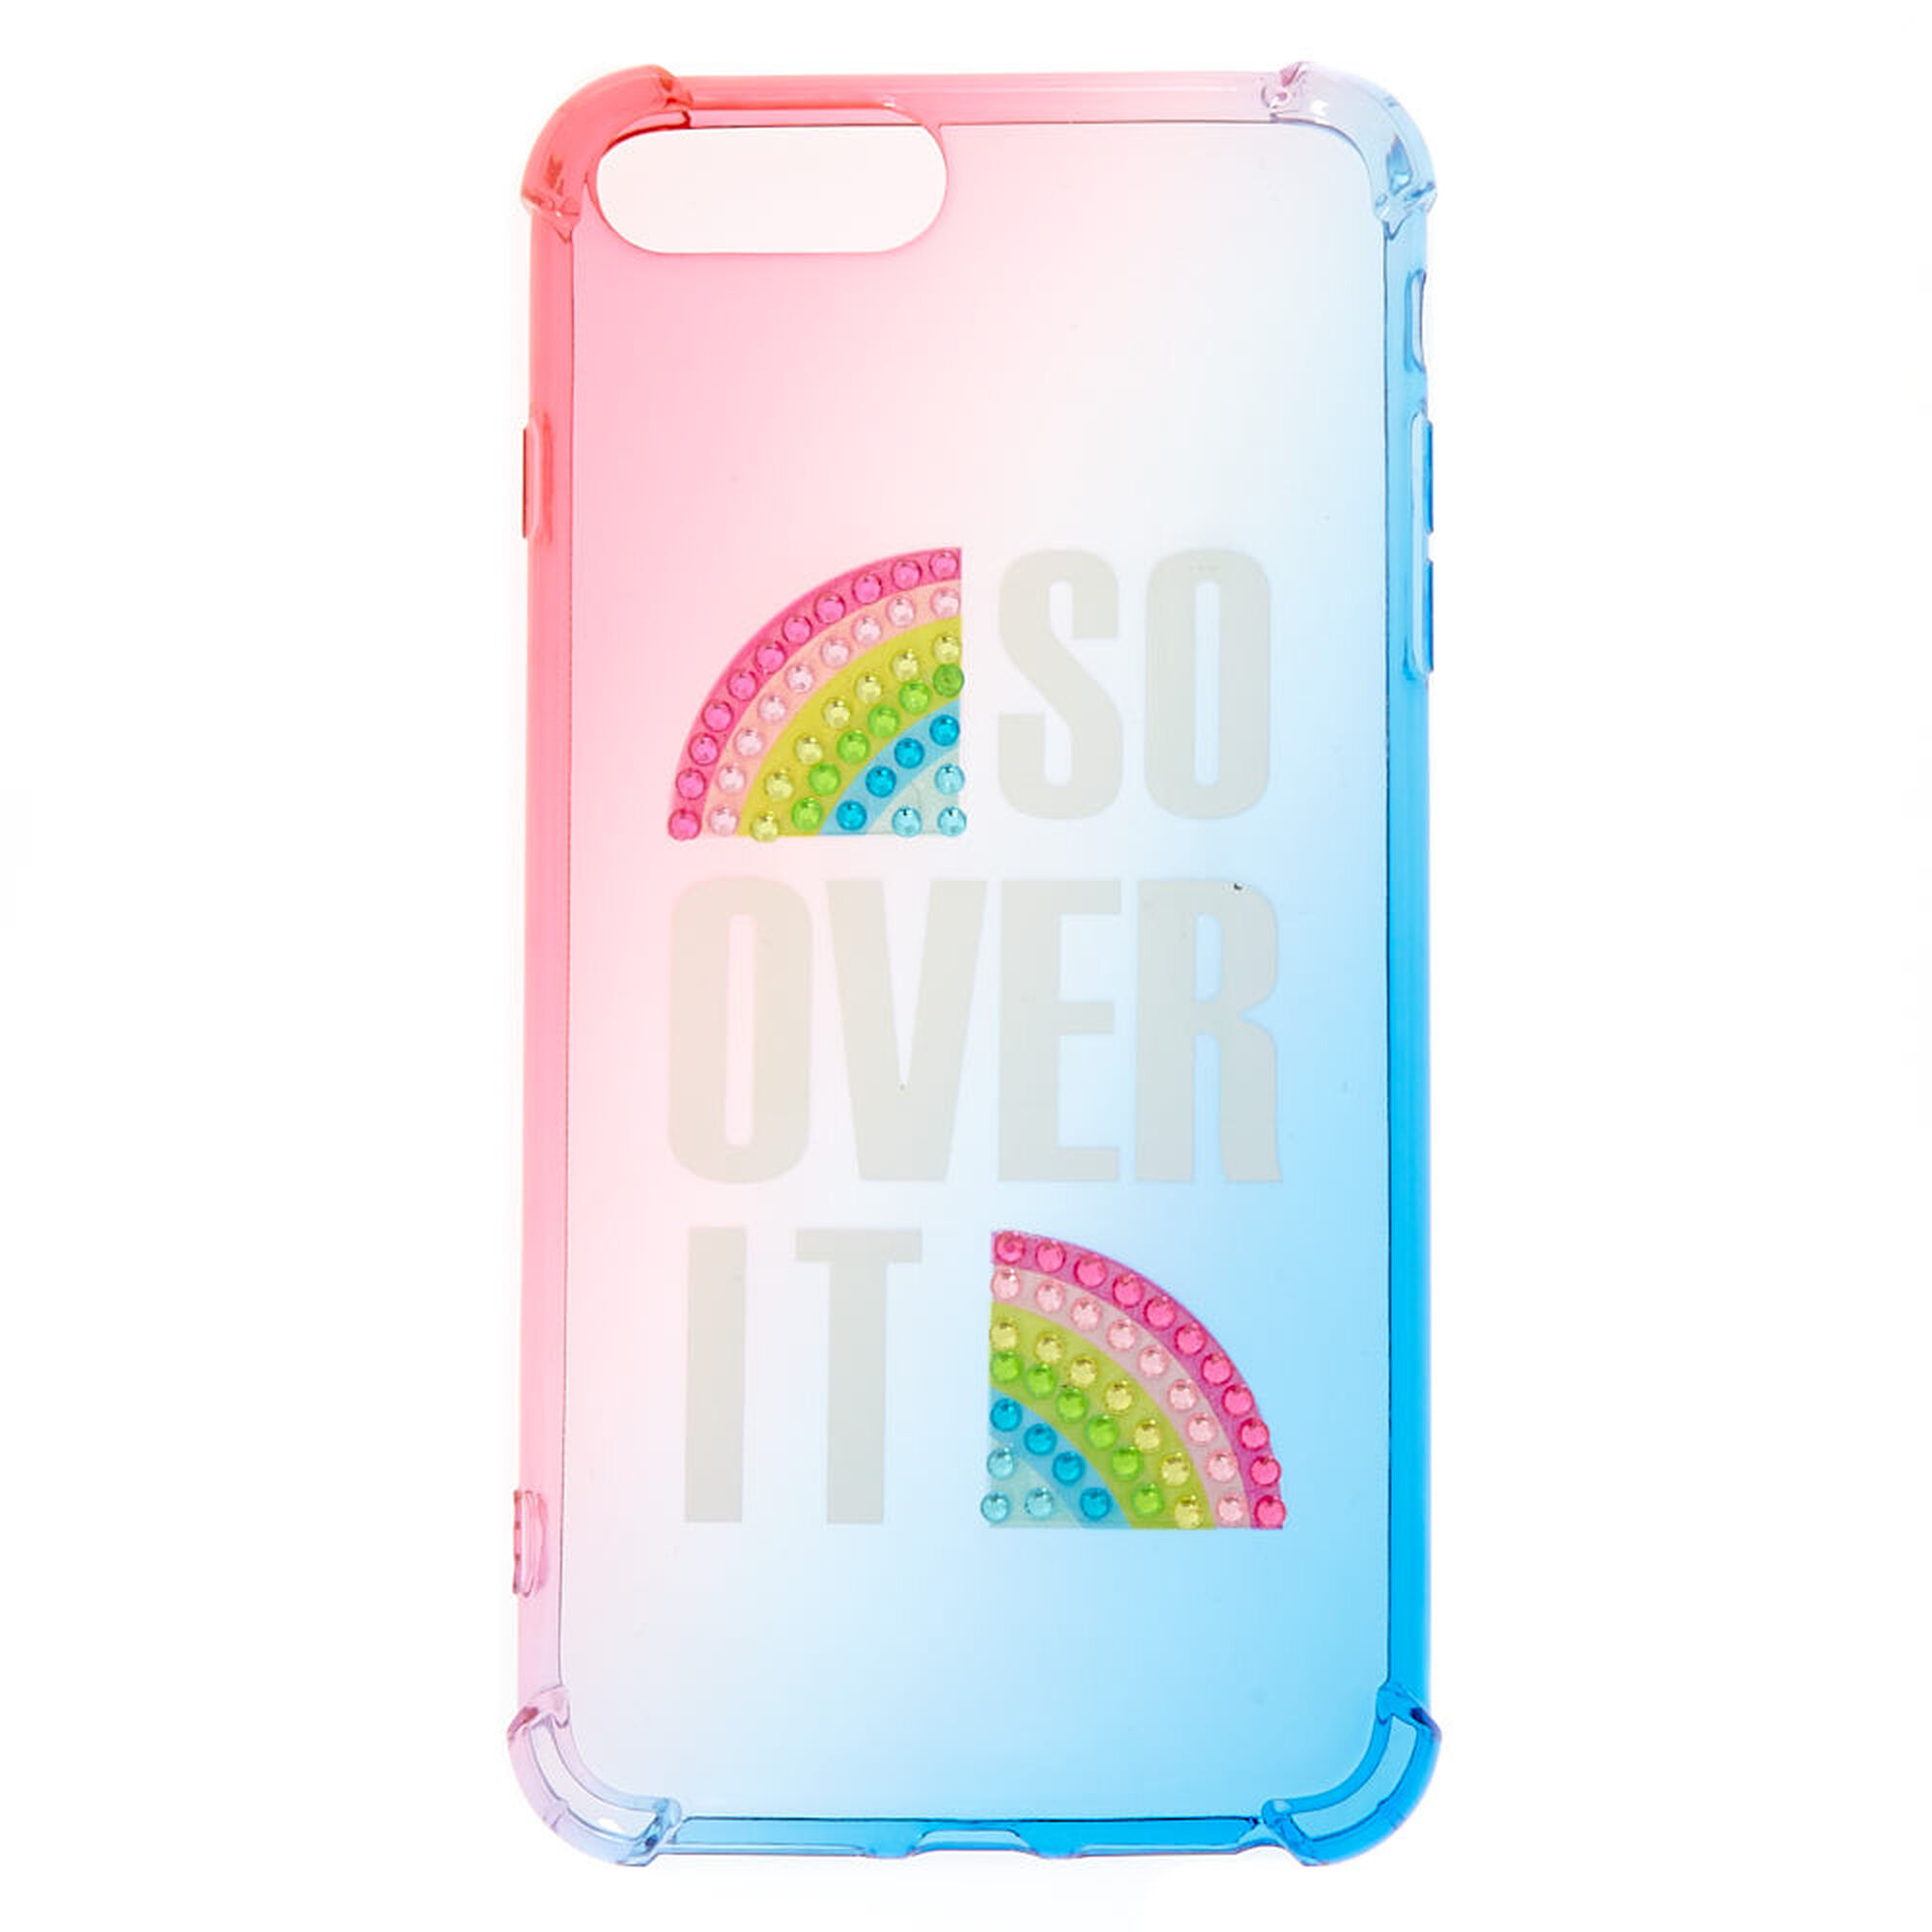 timeless design 9ddb4 705f8 So Over It Rainbow Protective Phone Case - Fits iPhone 6/7/8